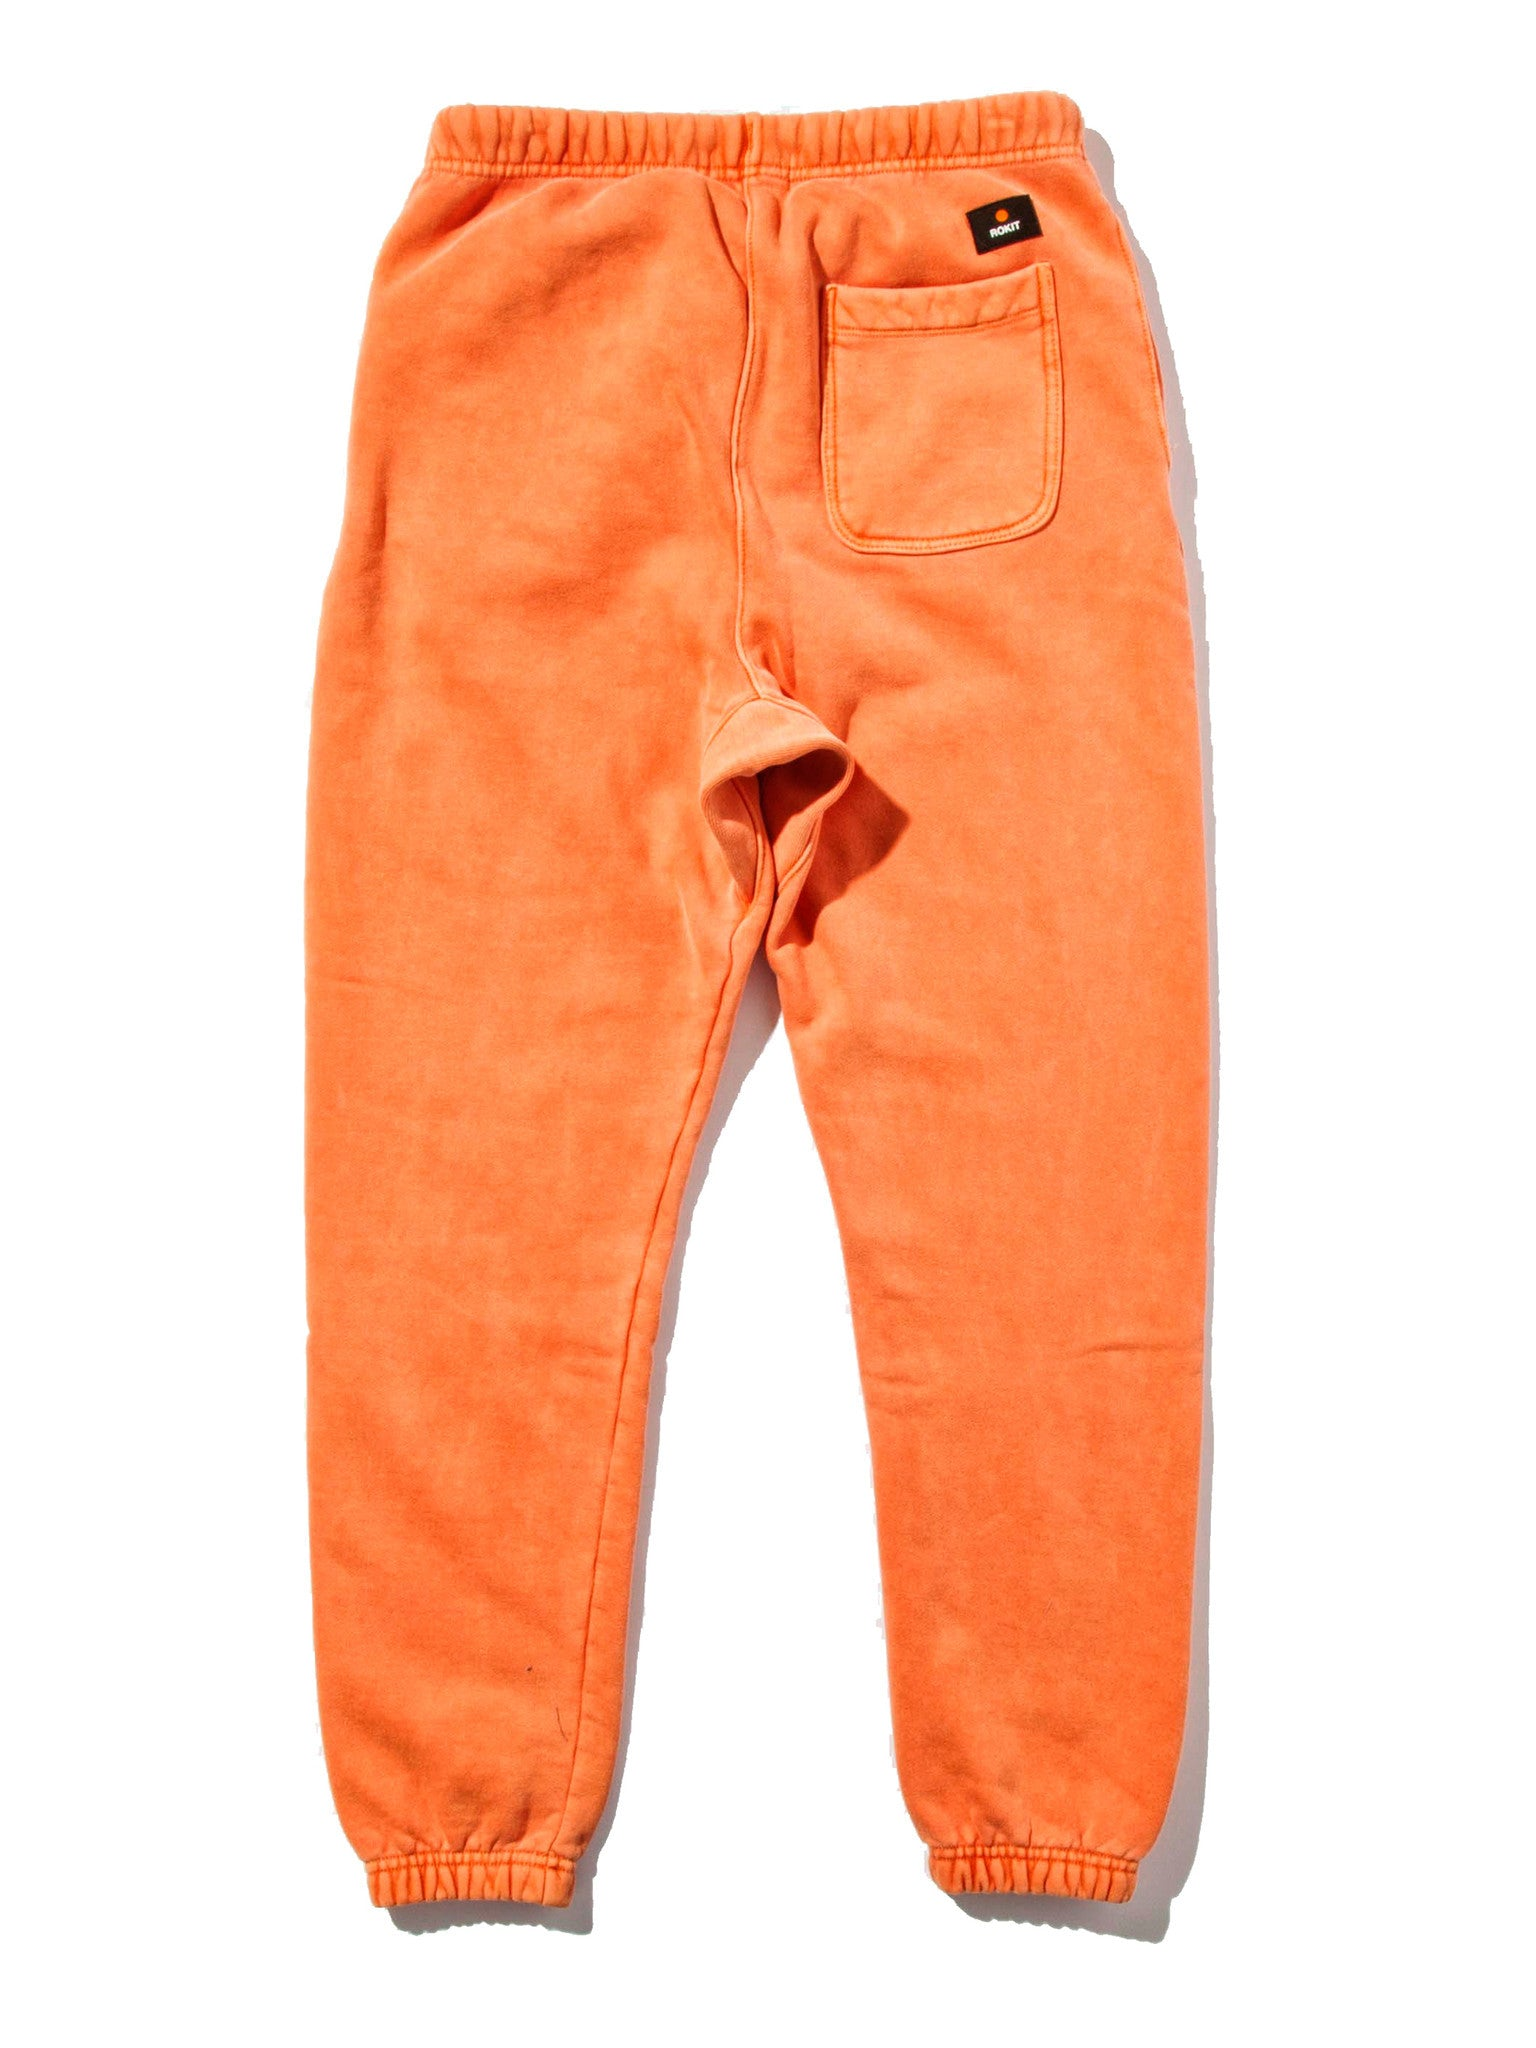 Orange Rumble Sweatpant 6